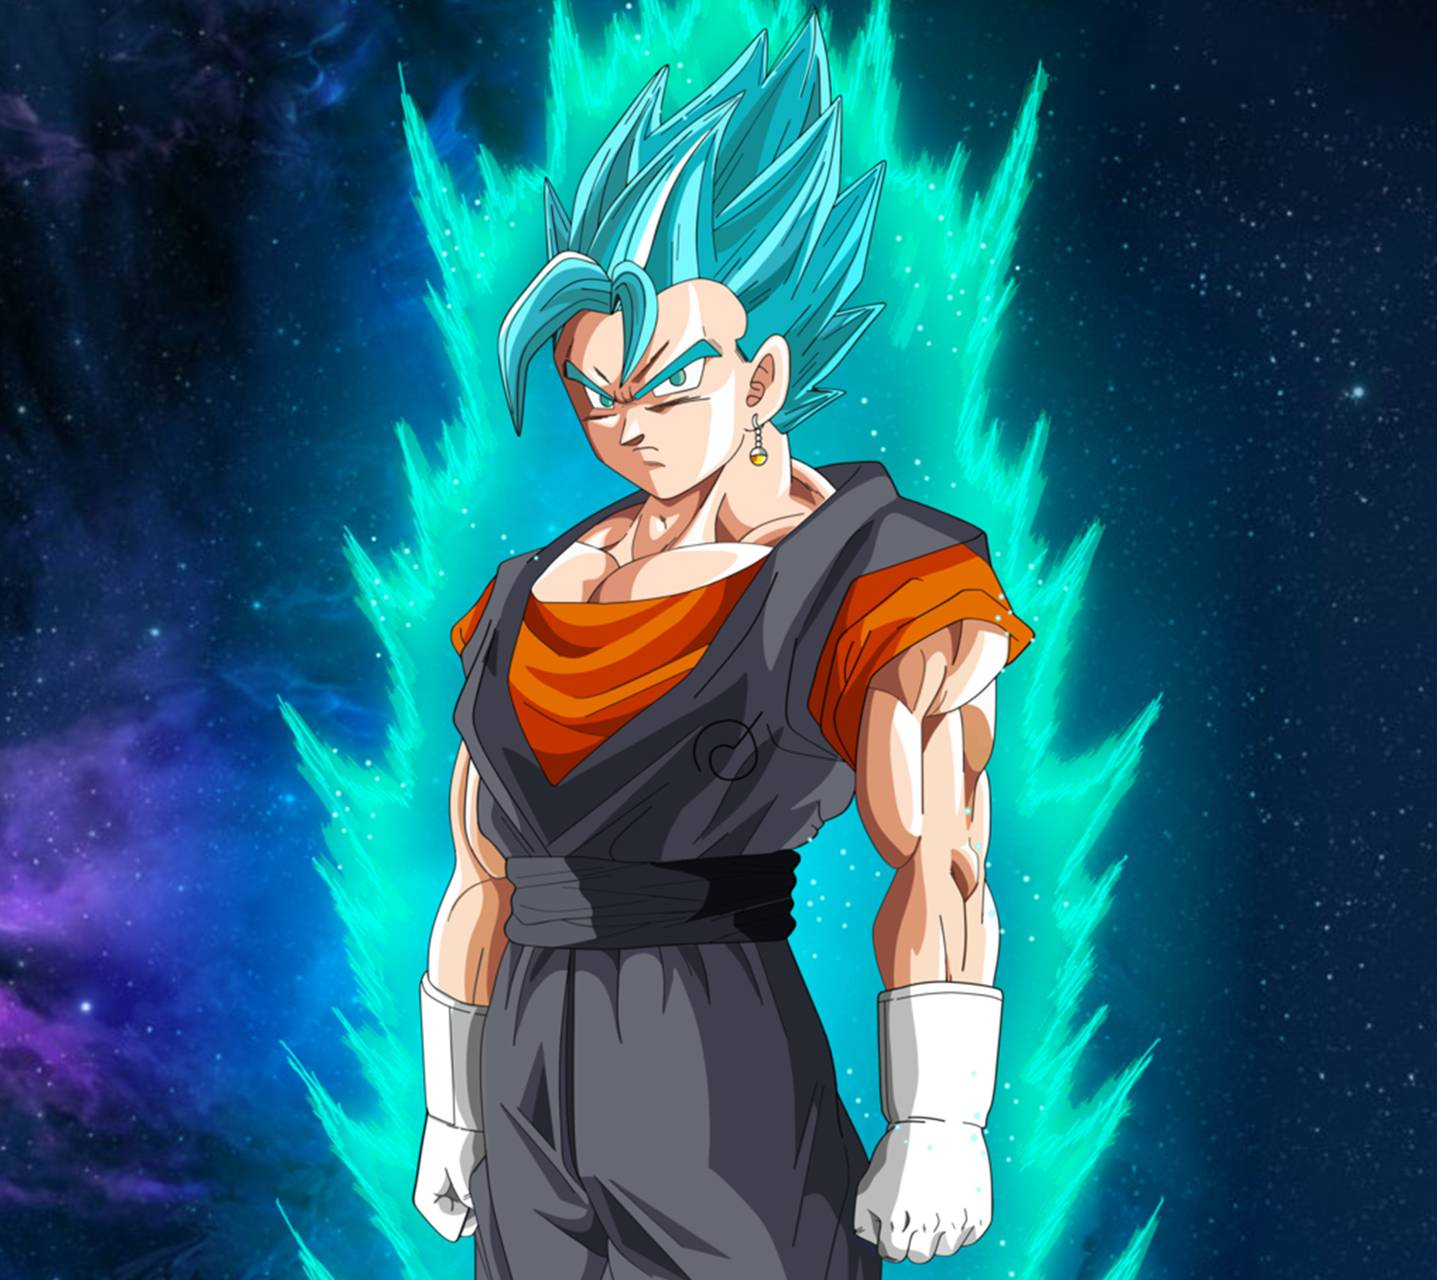 Vegito Blue Wallpaper By Nimic94 V4td2iozcm6fy